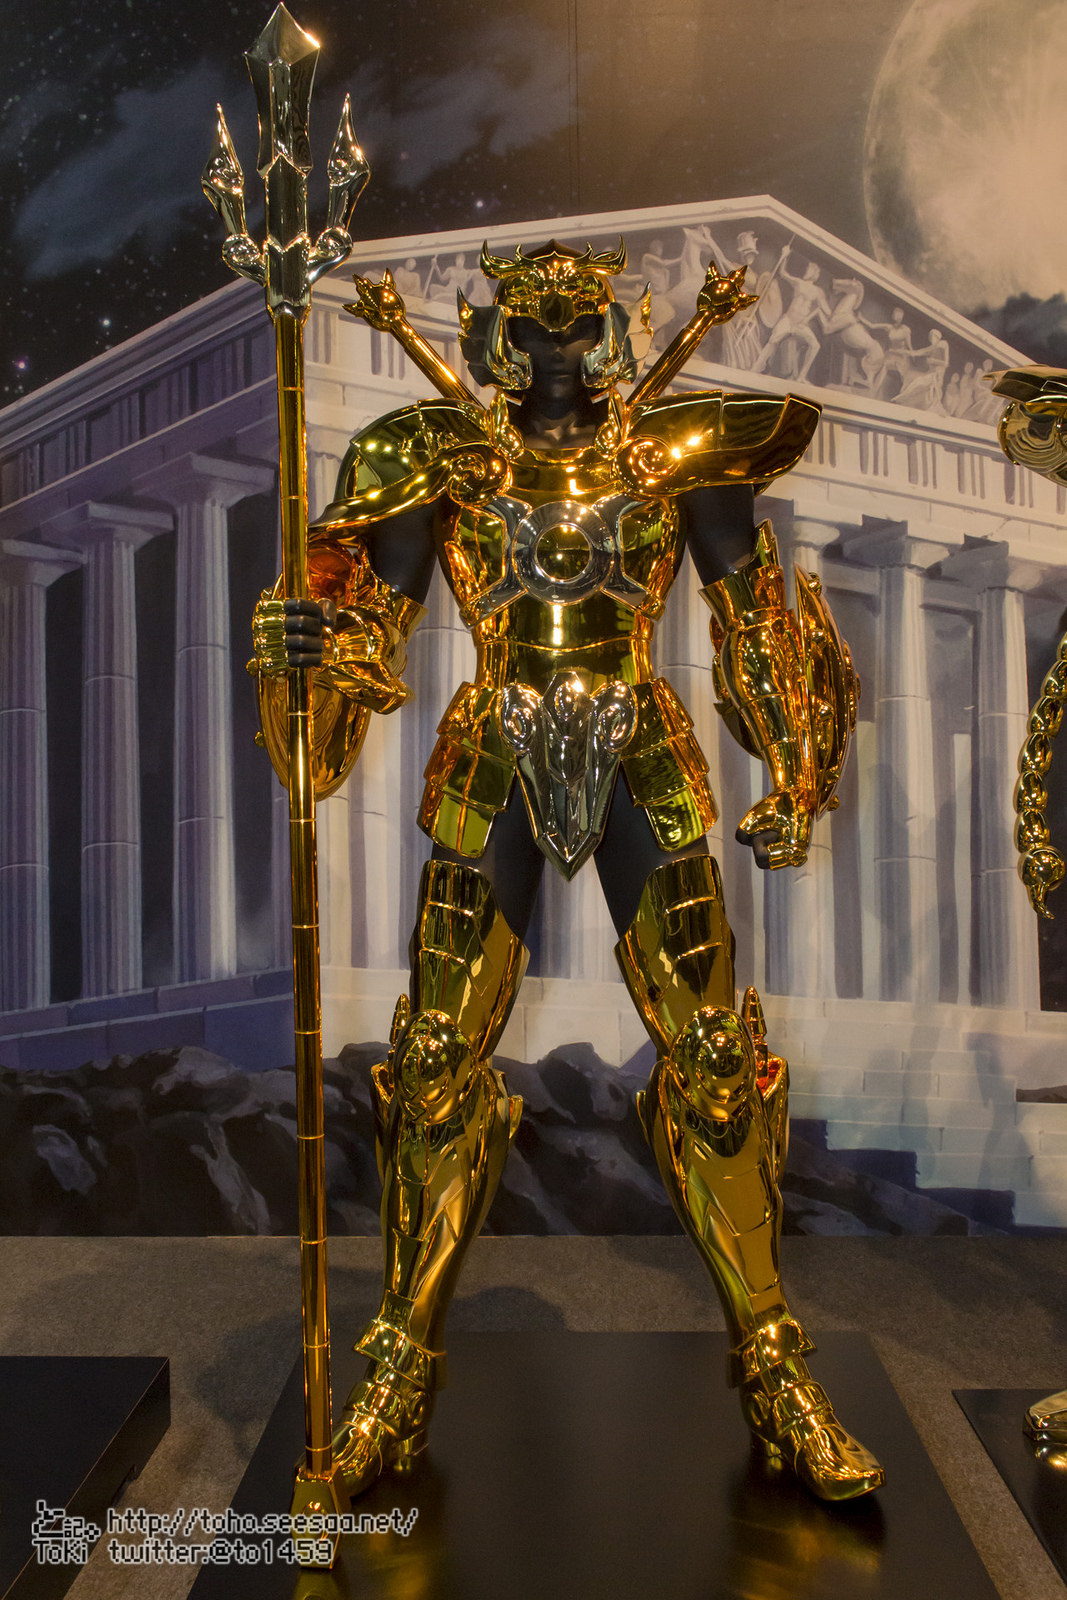 Complete Works of Saint Seiya - Gold Cloths in scala 1:1